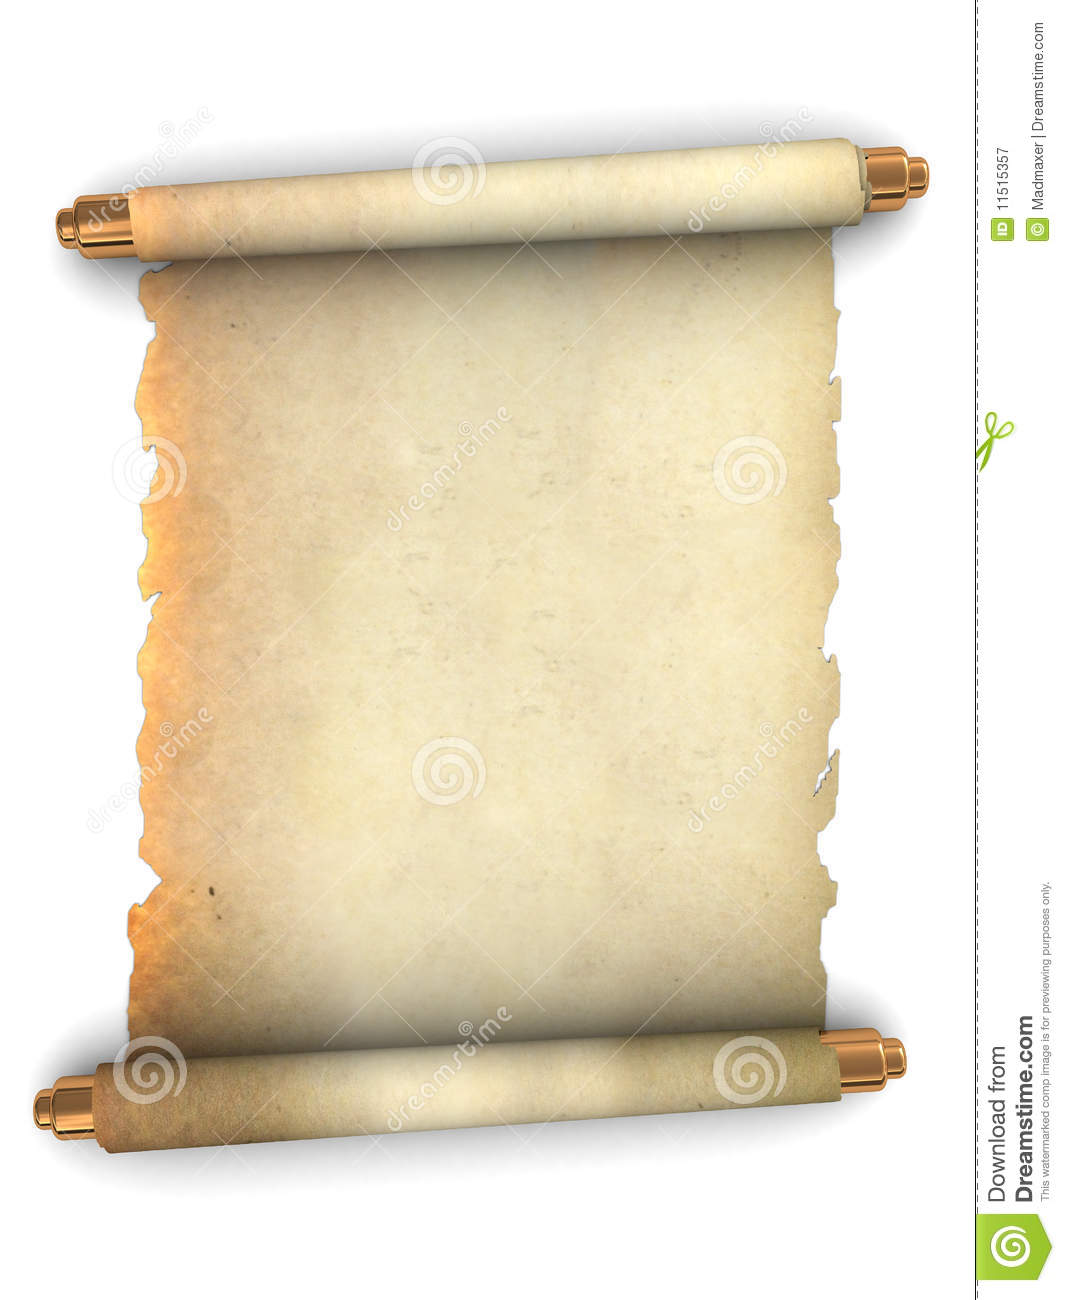 Ancient Scroll: Ancient Paper Scroll Royalty Free Stock Photography